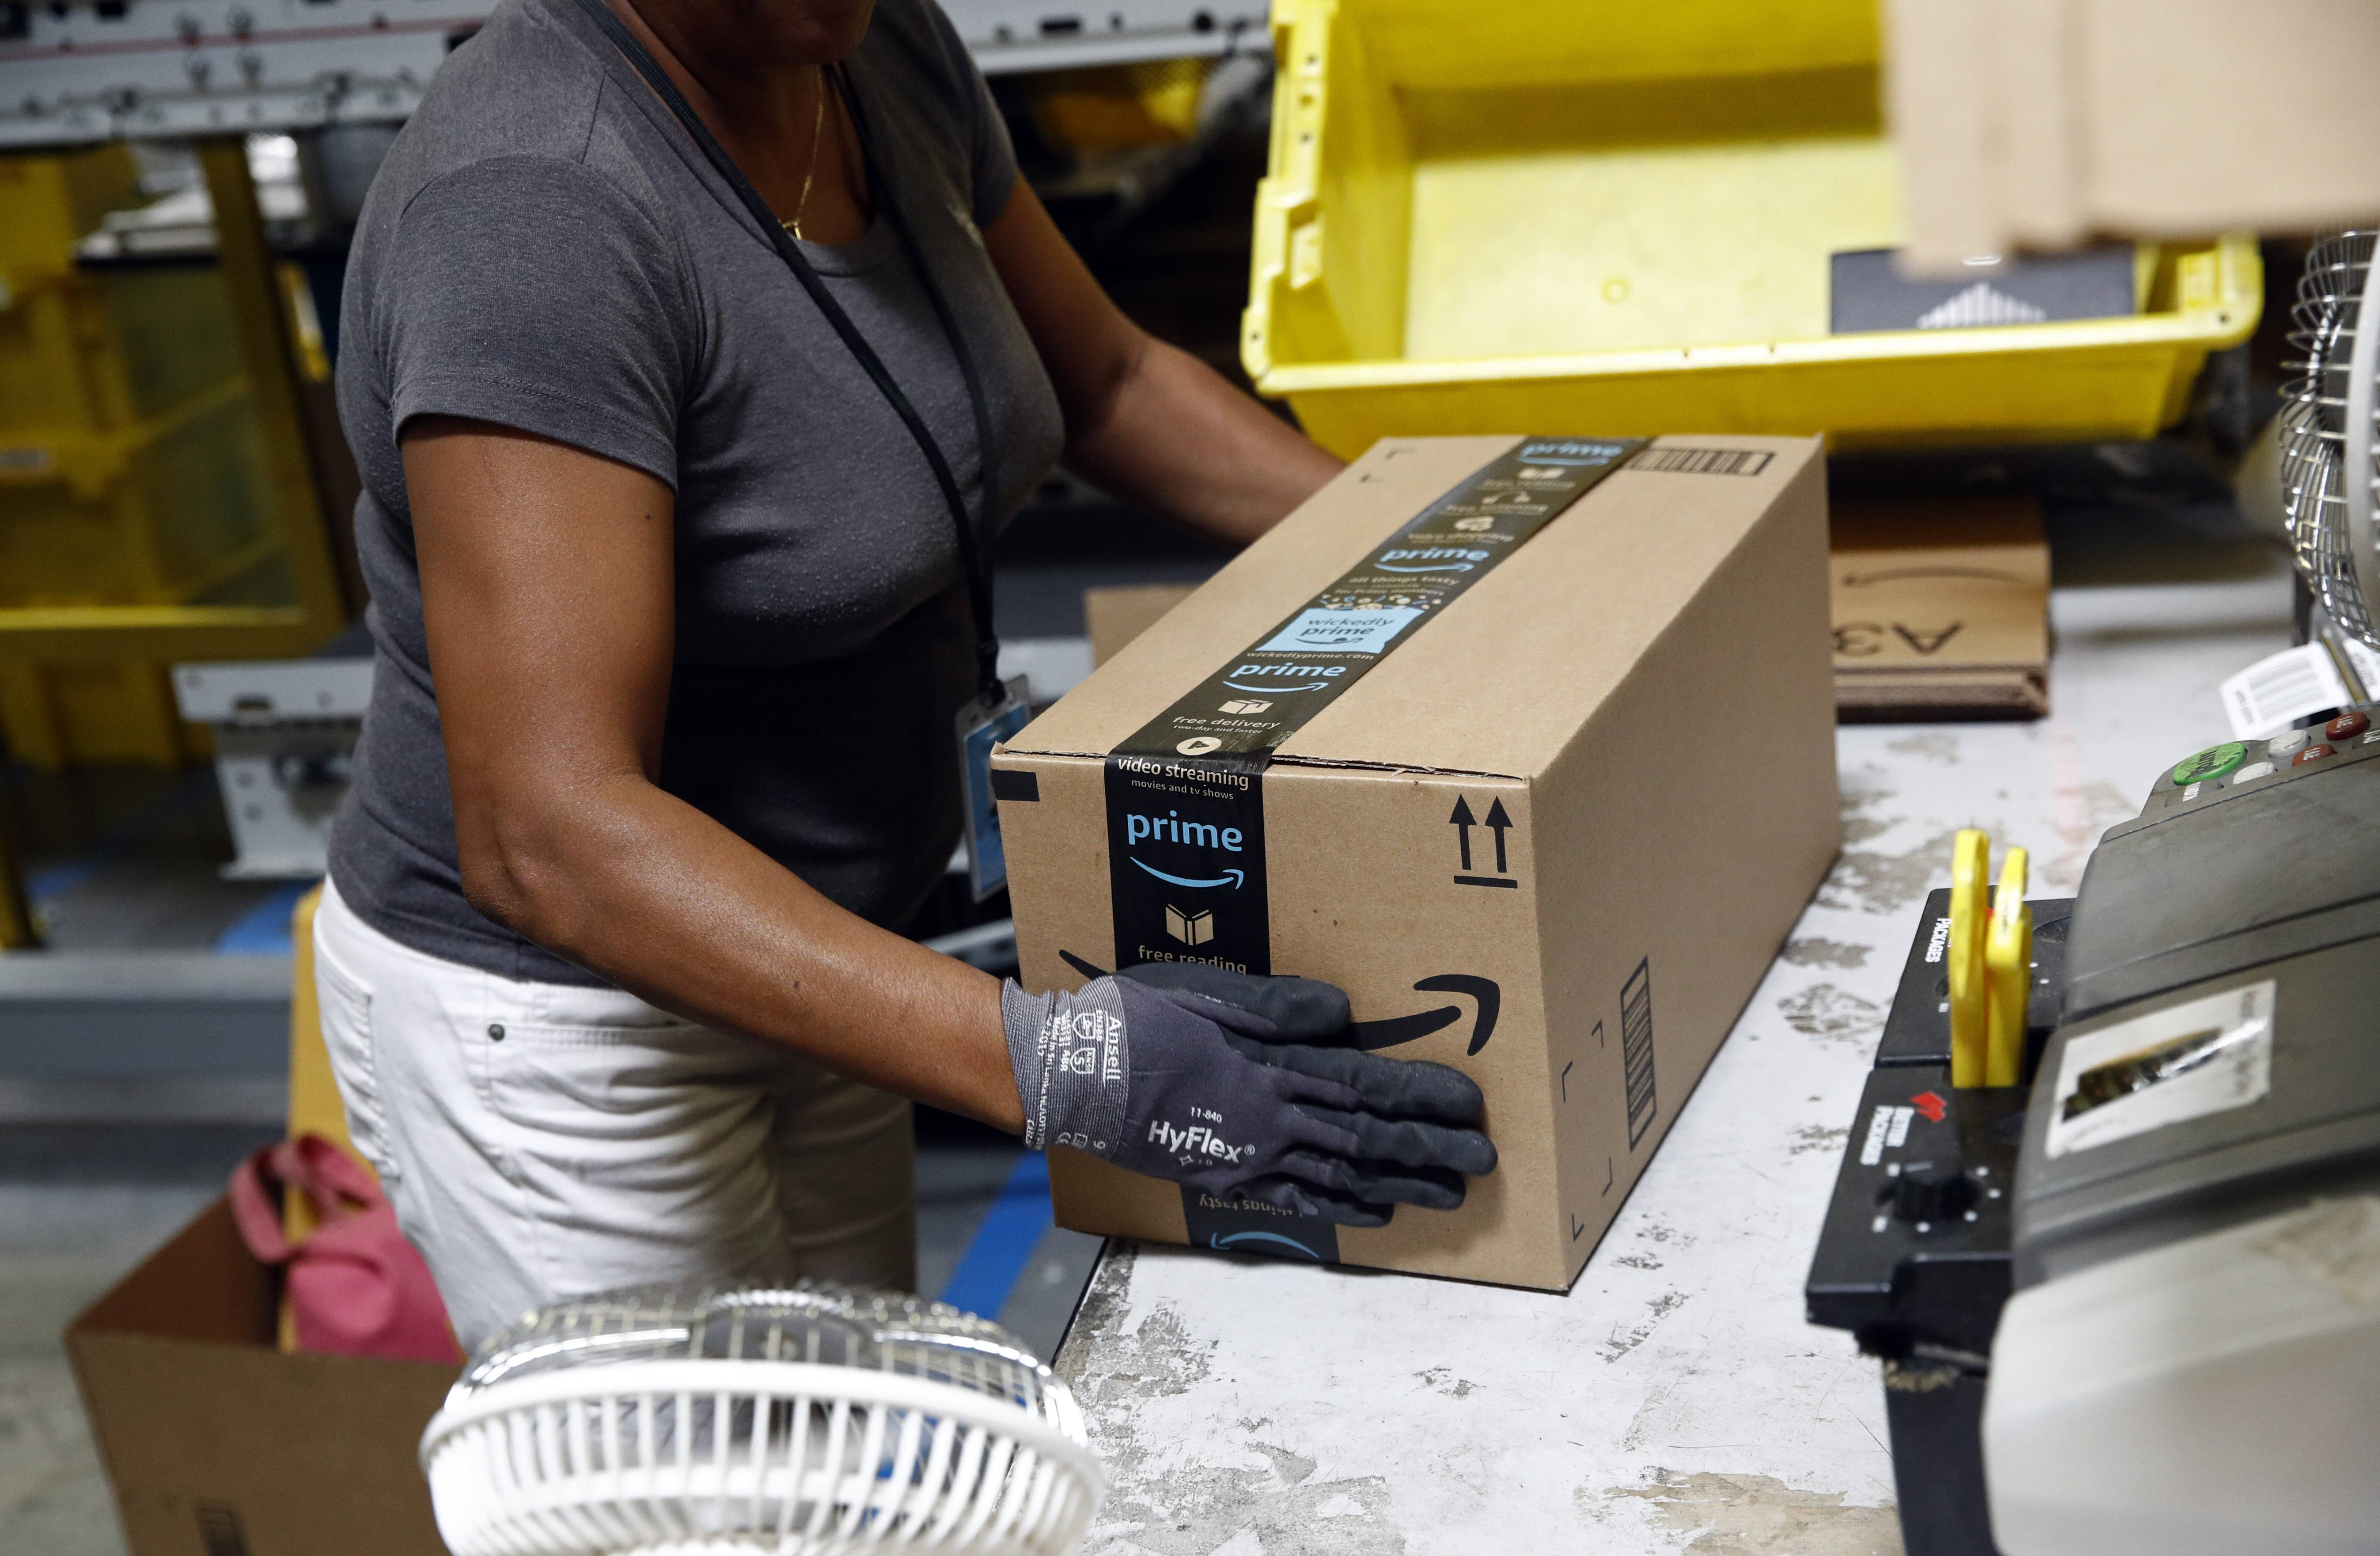 Myrtice Harris applies tape to a package before shipment at an Amazon fulfillment center in Baltimore. Amazon's Prime Day starts July 16, 2018, and will be six hours longer than last year's and will launch new products.